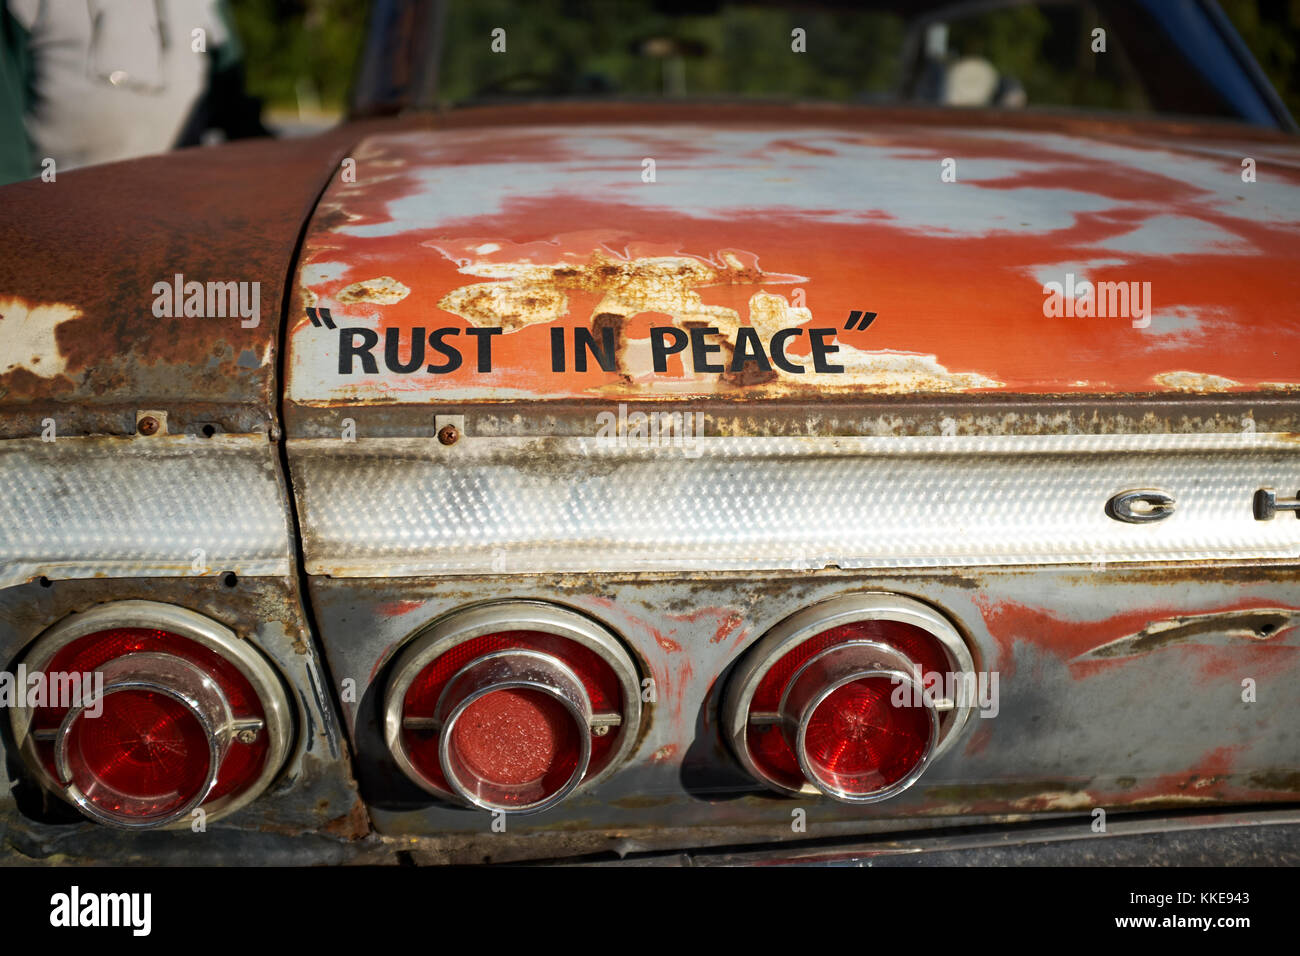 Old rusting vintage Chevrolet with fun text stencilled onto the boot lid - Rust in Peace - in a close up view Stock Photo